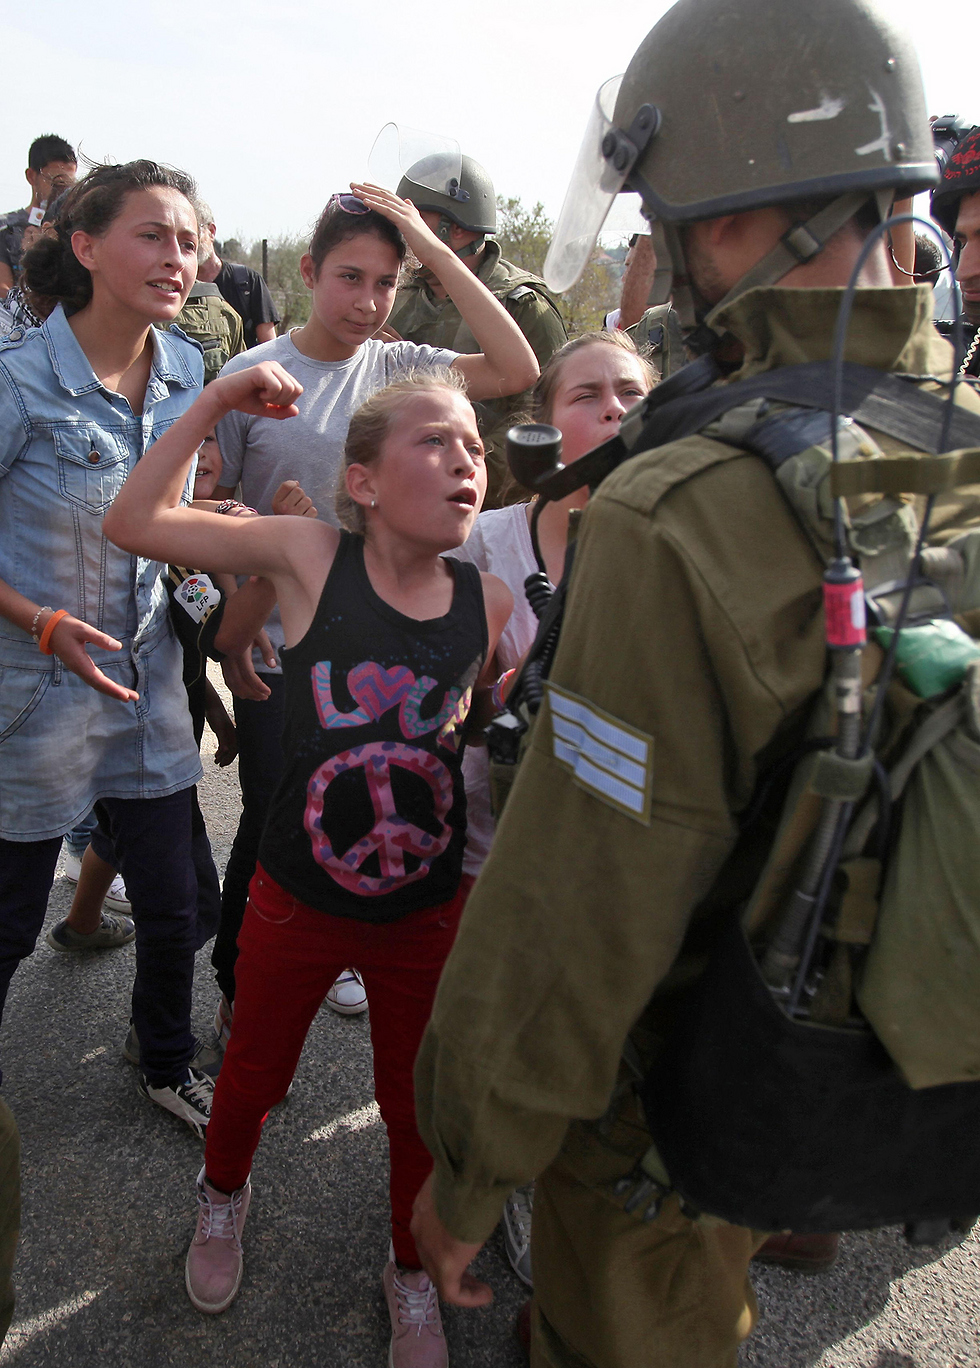 Tamimi facing IDF soldiers in 2012 (Photo: AFP)